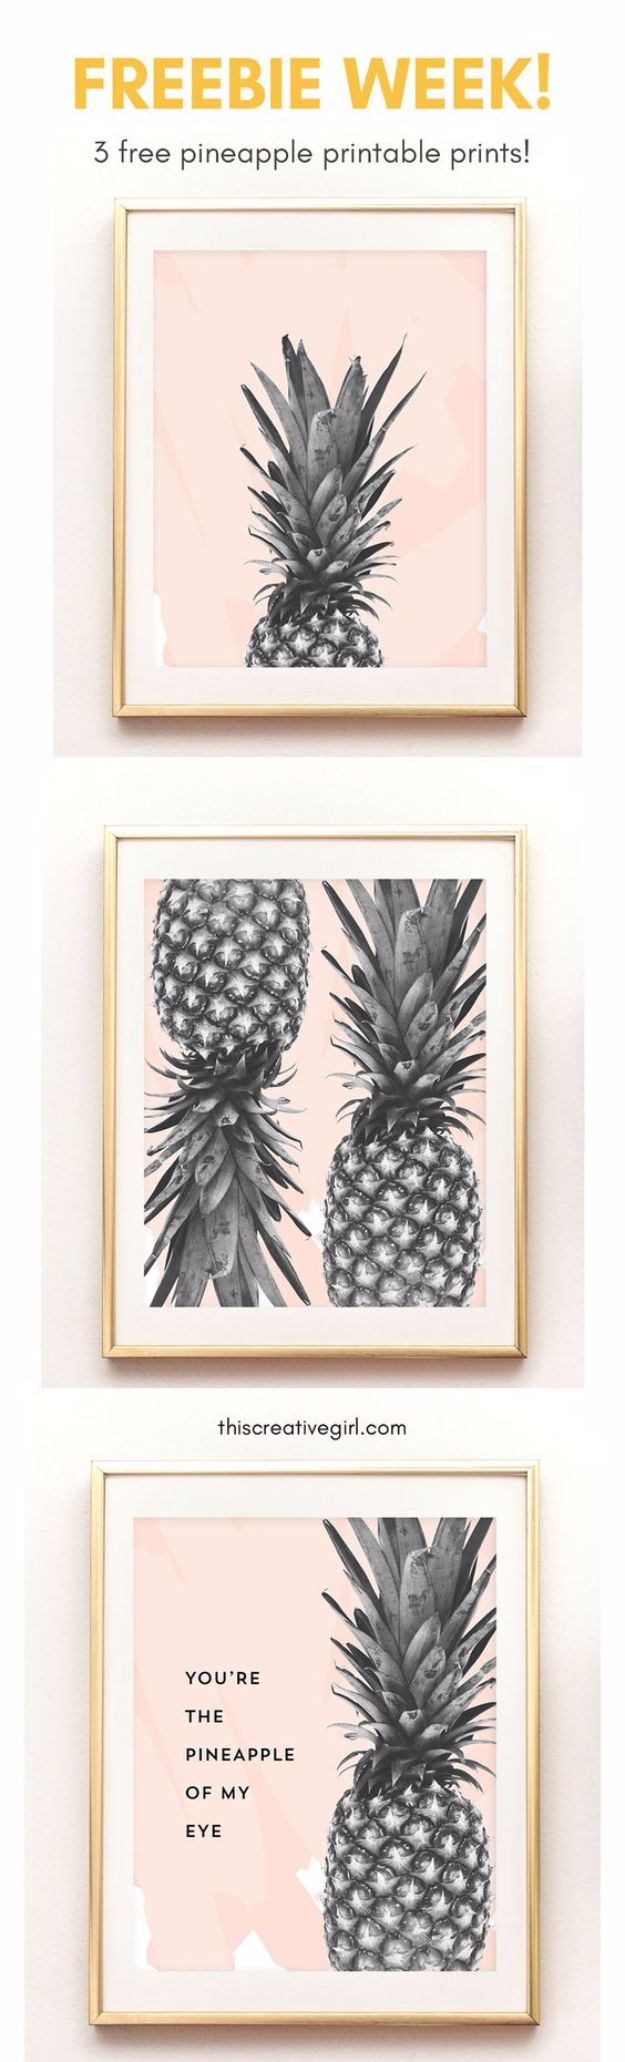 Free Printables For Your Walls - Free Pineapple Printable Art - Best Free Prints for Wall Art and Picture to Print for Home and Bedroom Decor - Ideas for the Home, Organization - Quotes for Bedroom and Kitchens, Vintage Bathroom Pictures - Downloadable Printable for Kids - DIY and Crafts by DIY JOY http://diyjoy.com/free-printables-walls